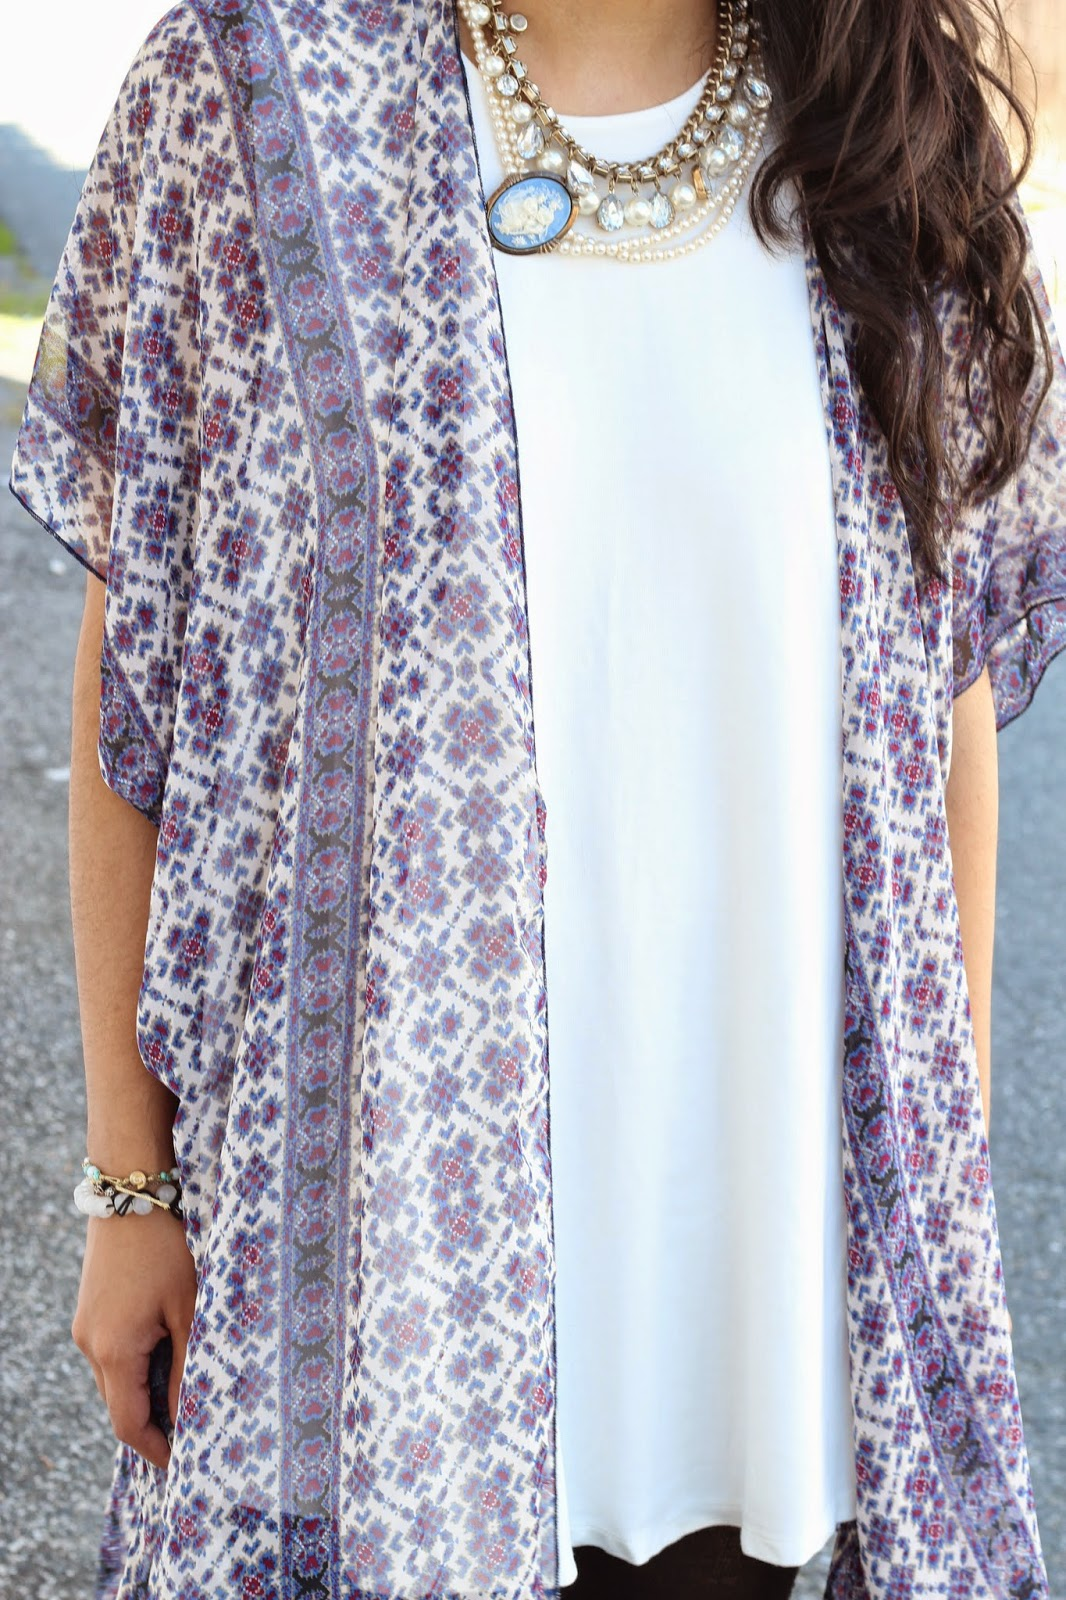 floral kimono jacket with white dress with cameo necklace www.footnotesandfinds.com